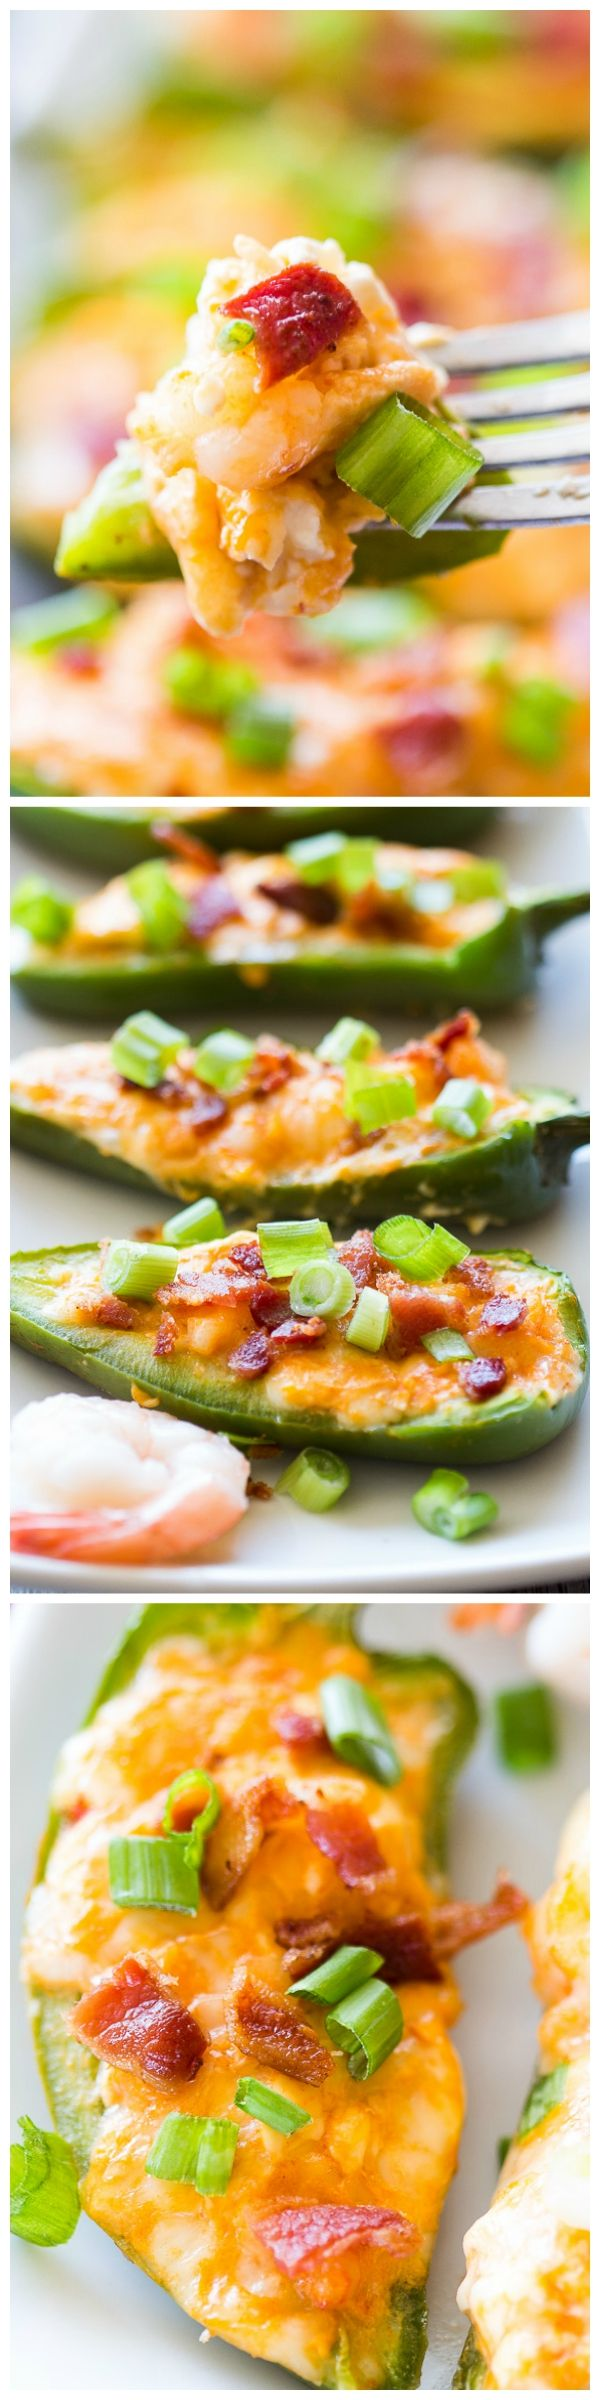 A spicy Chipotle Shrimp Jalapeño popper, stuffed with a hearty blend of cheeses, spicy chipotle sauce, and jumbo shrimp pieces. Topped with crispy bacon pieces and green onions!